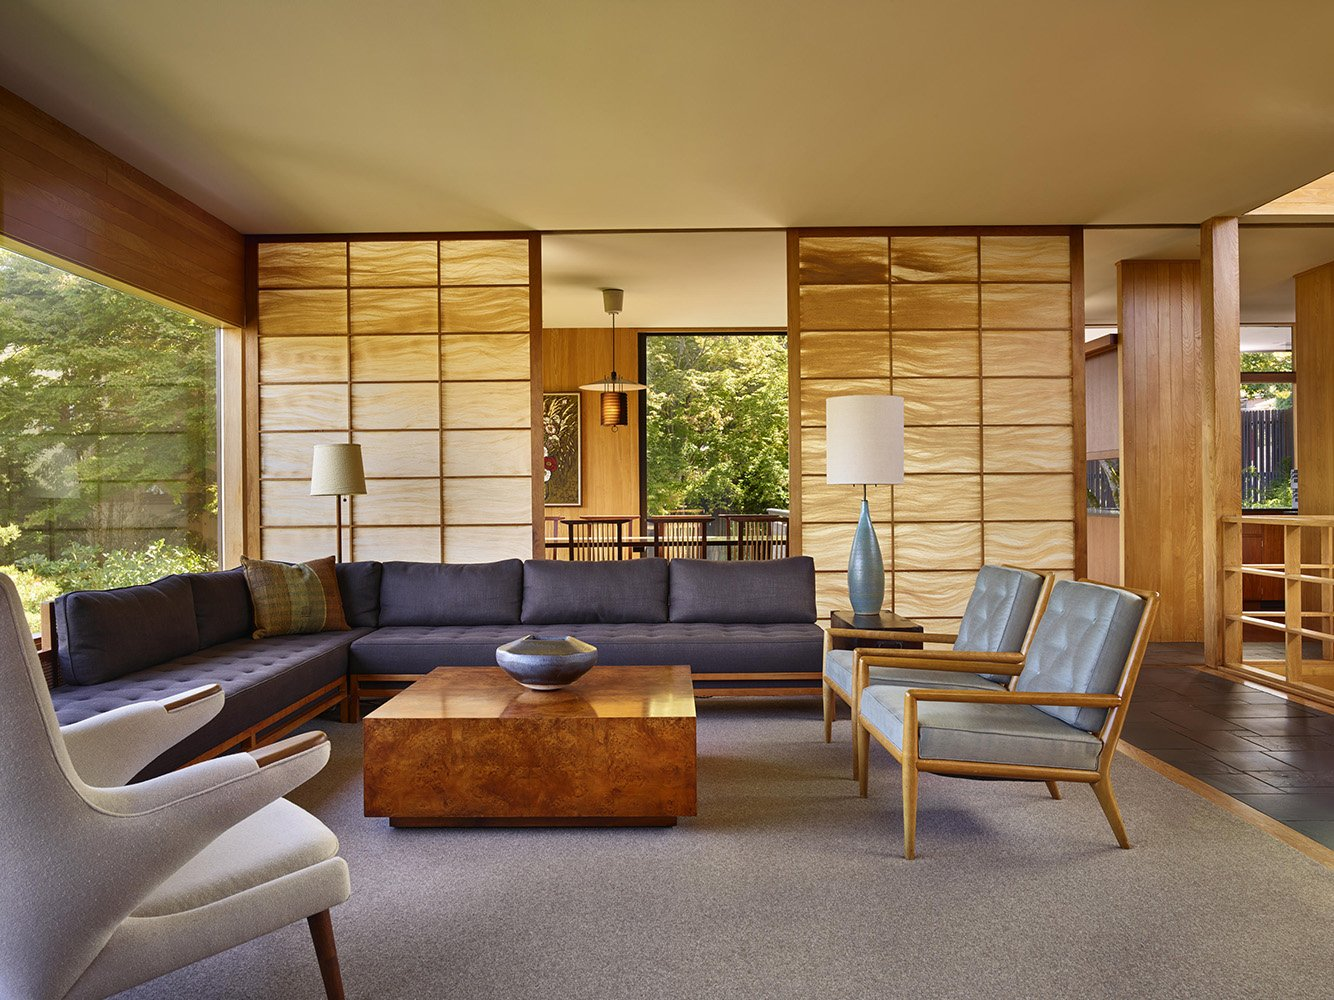 The horse hair shoji screens were restored to their original state with carefully sourced materials